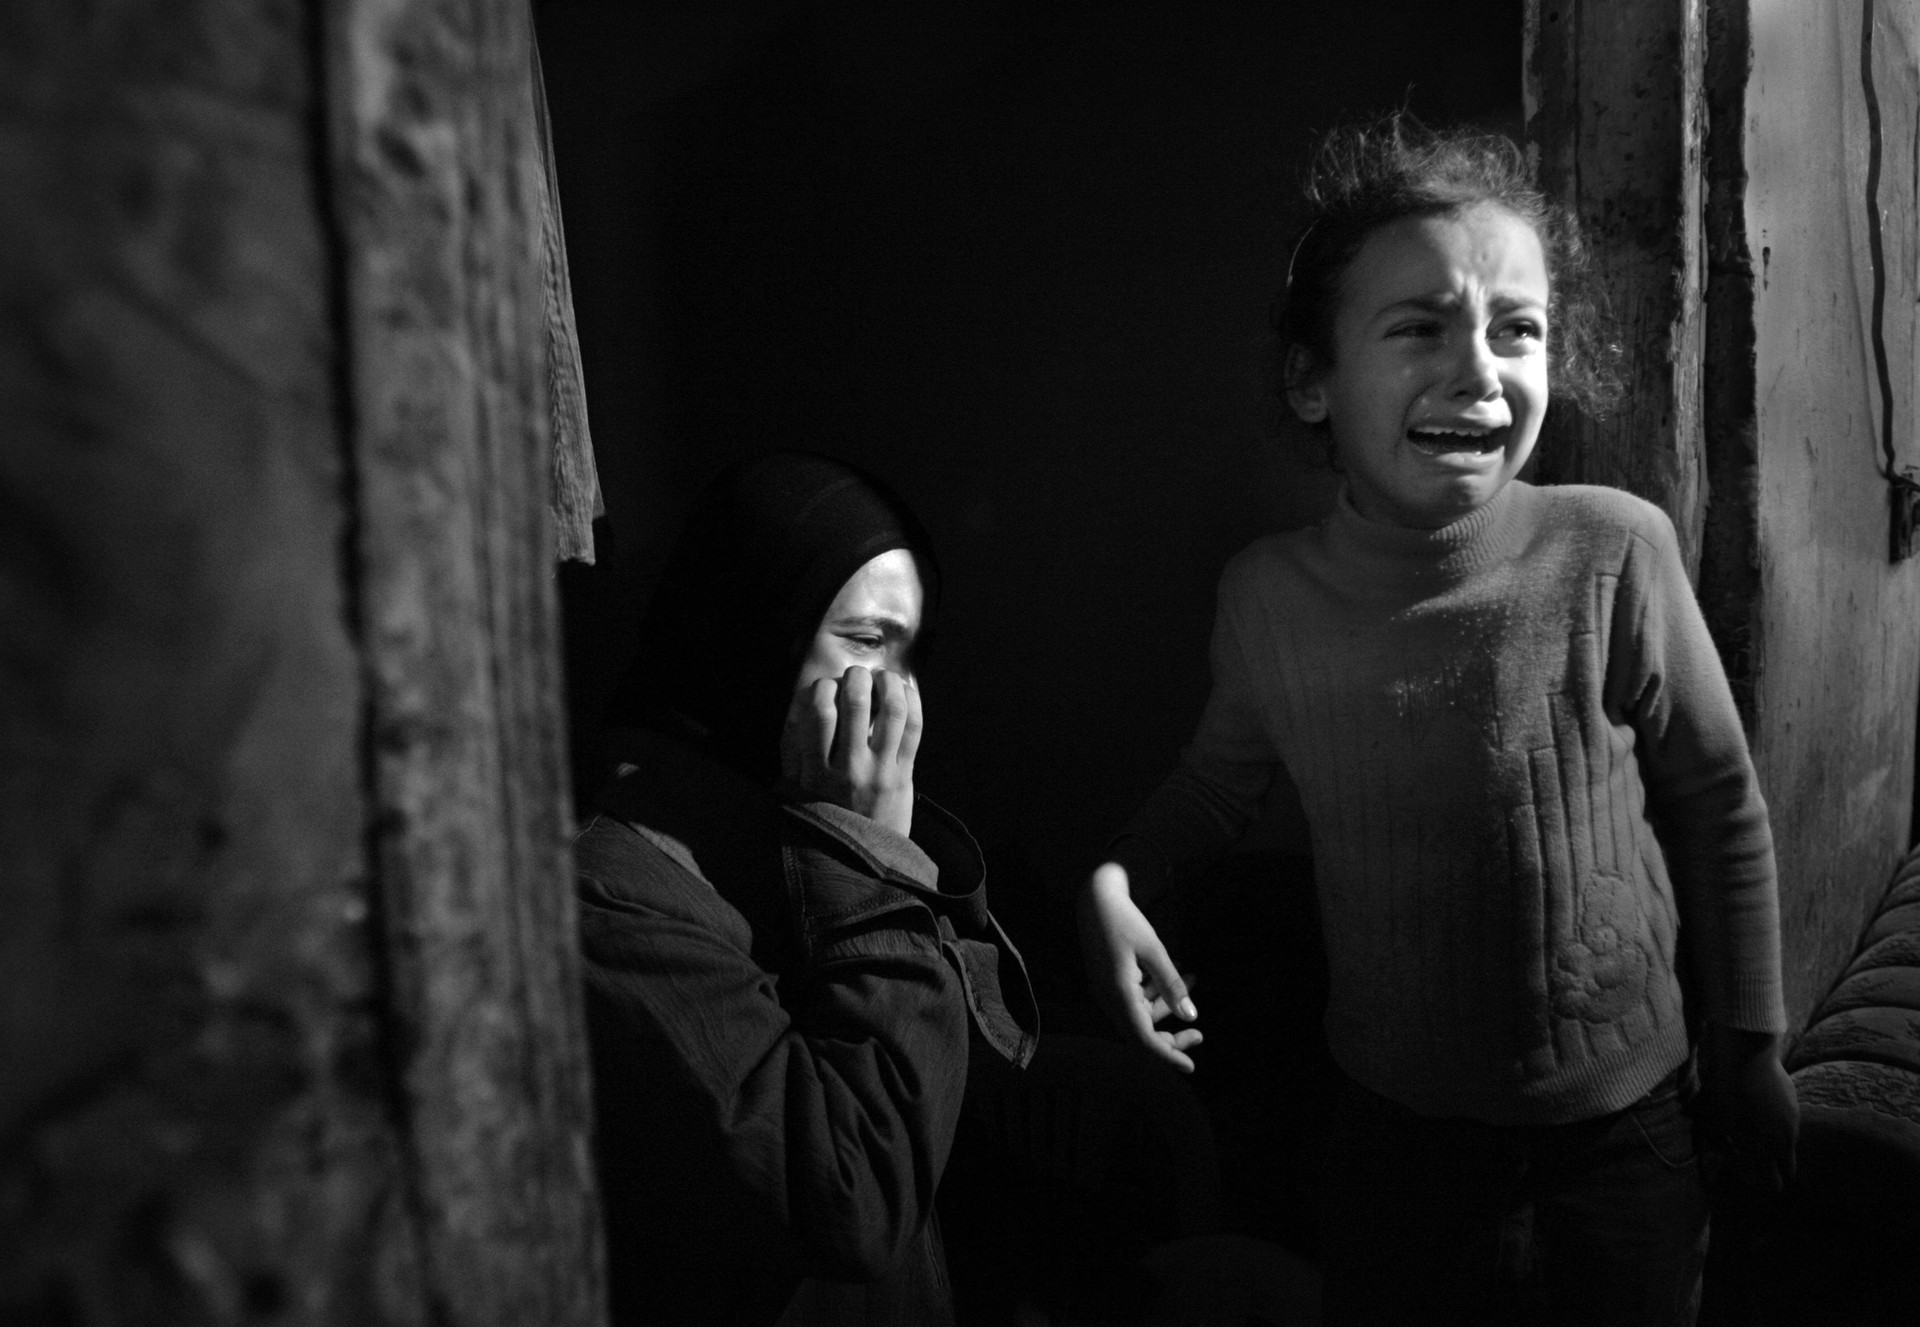 Mamdoh Abaid's sisters are consumed by grief as his body is brought into their small family home  during his funeral in Gaza.